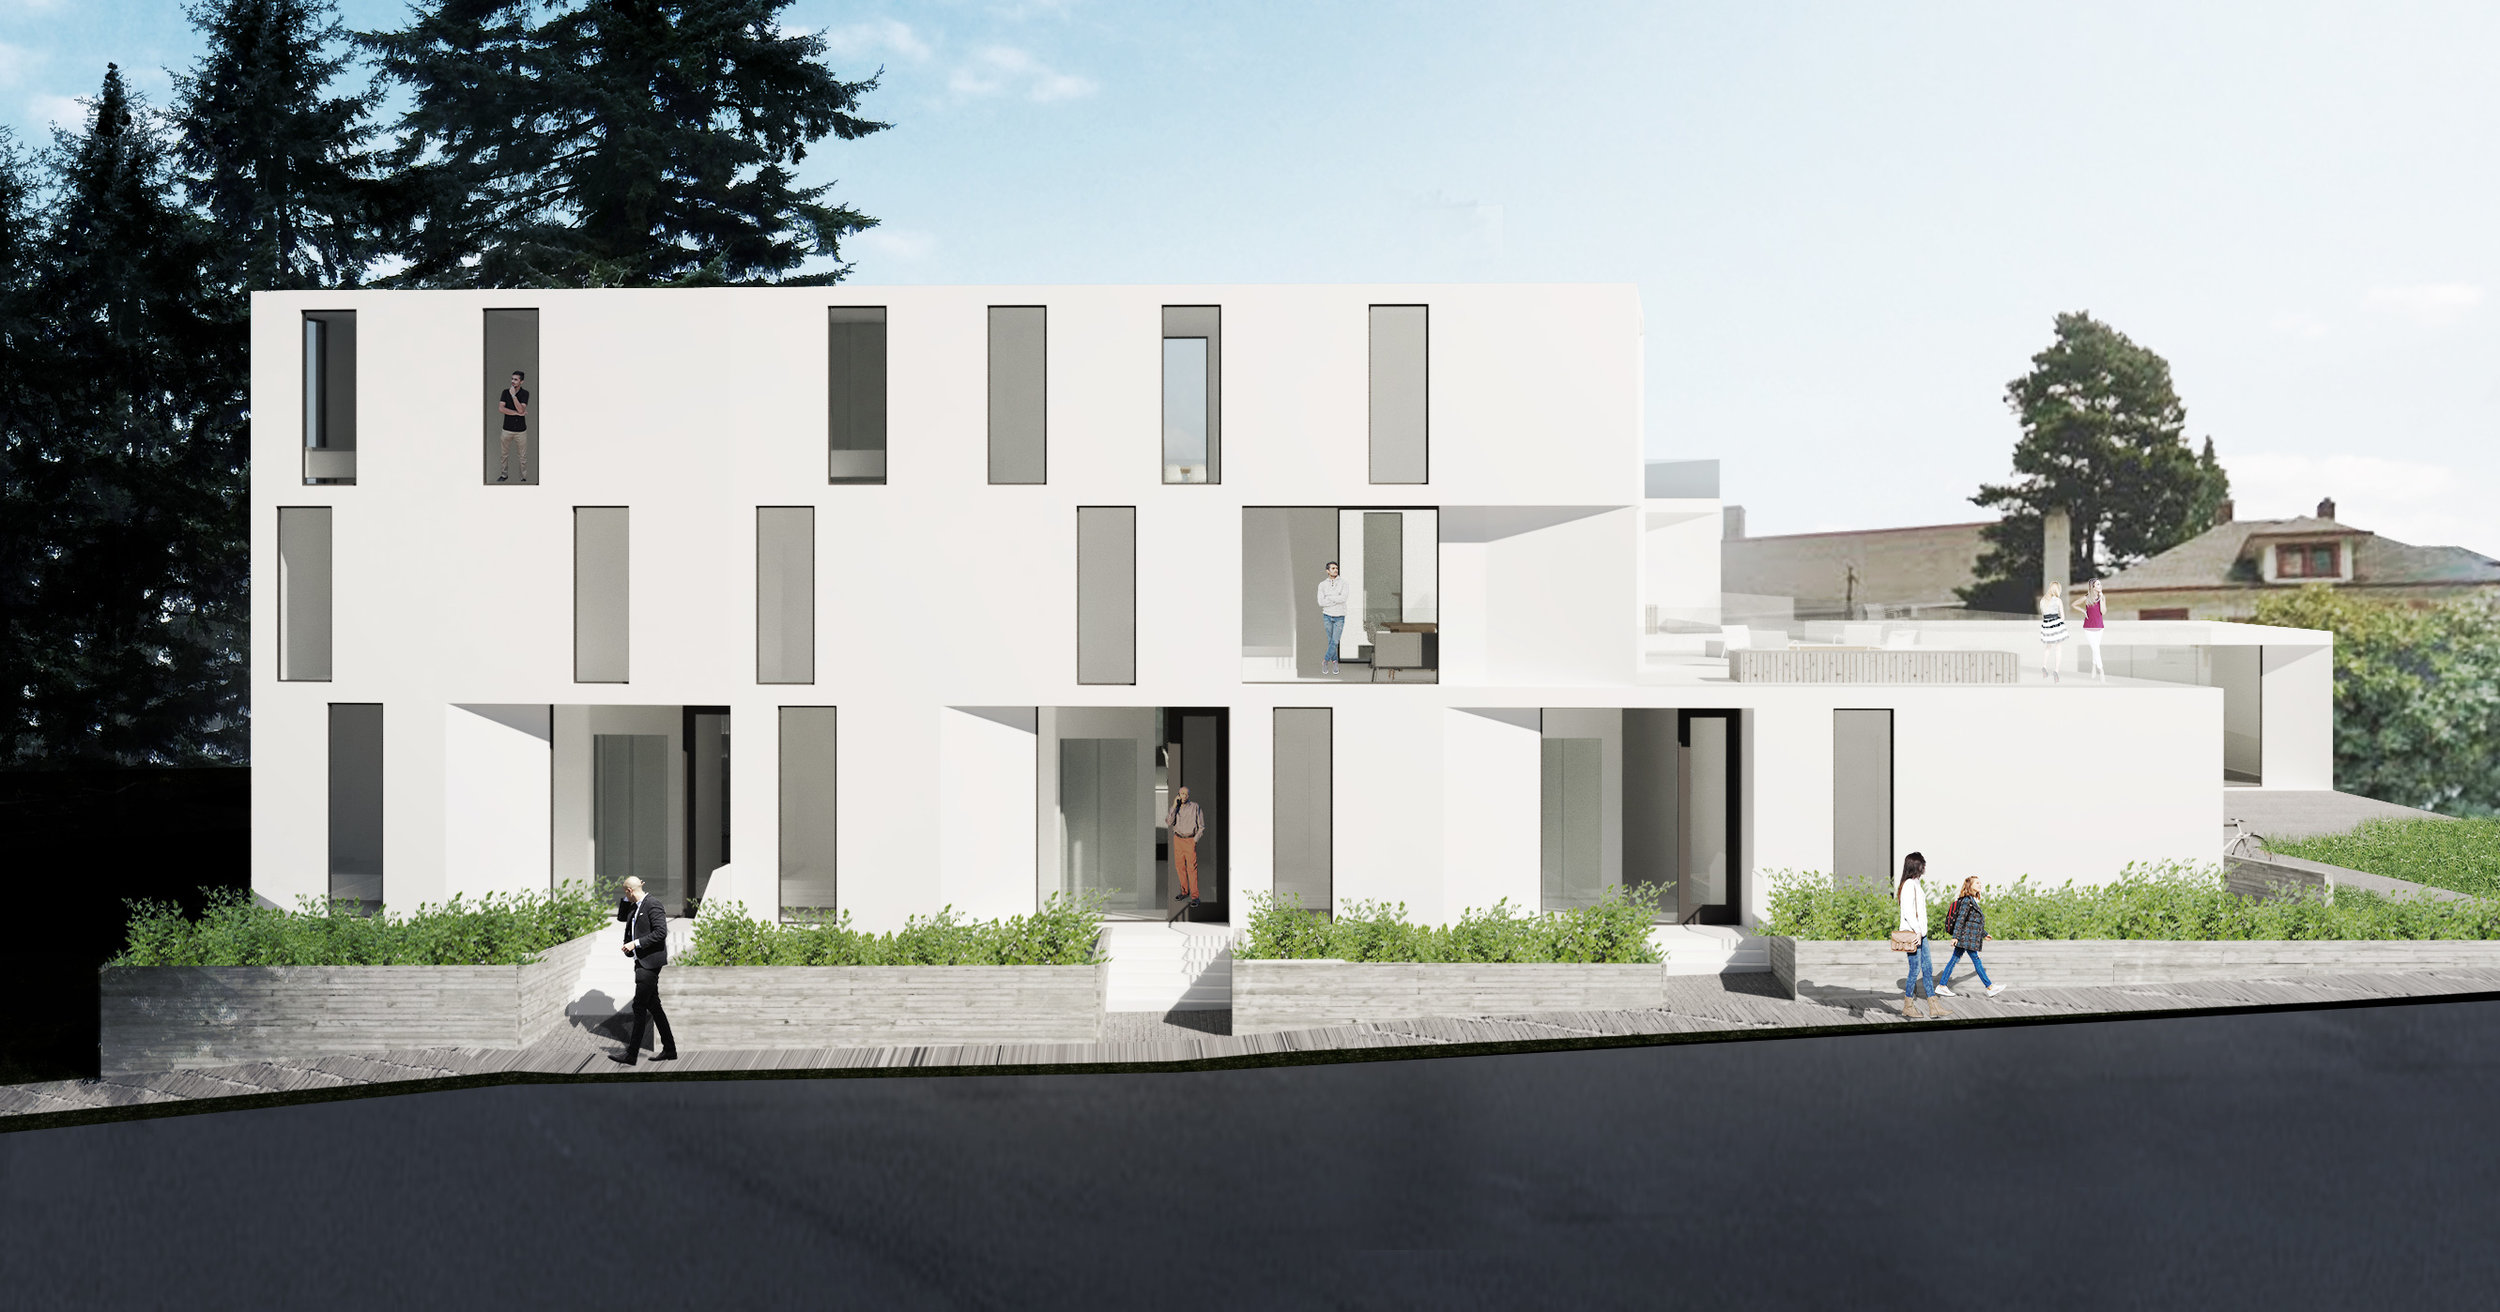 19_0729 West Elevation Rendering.jpg